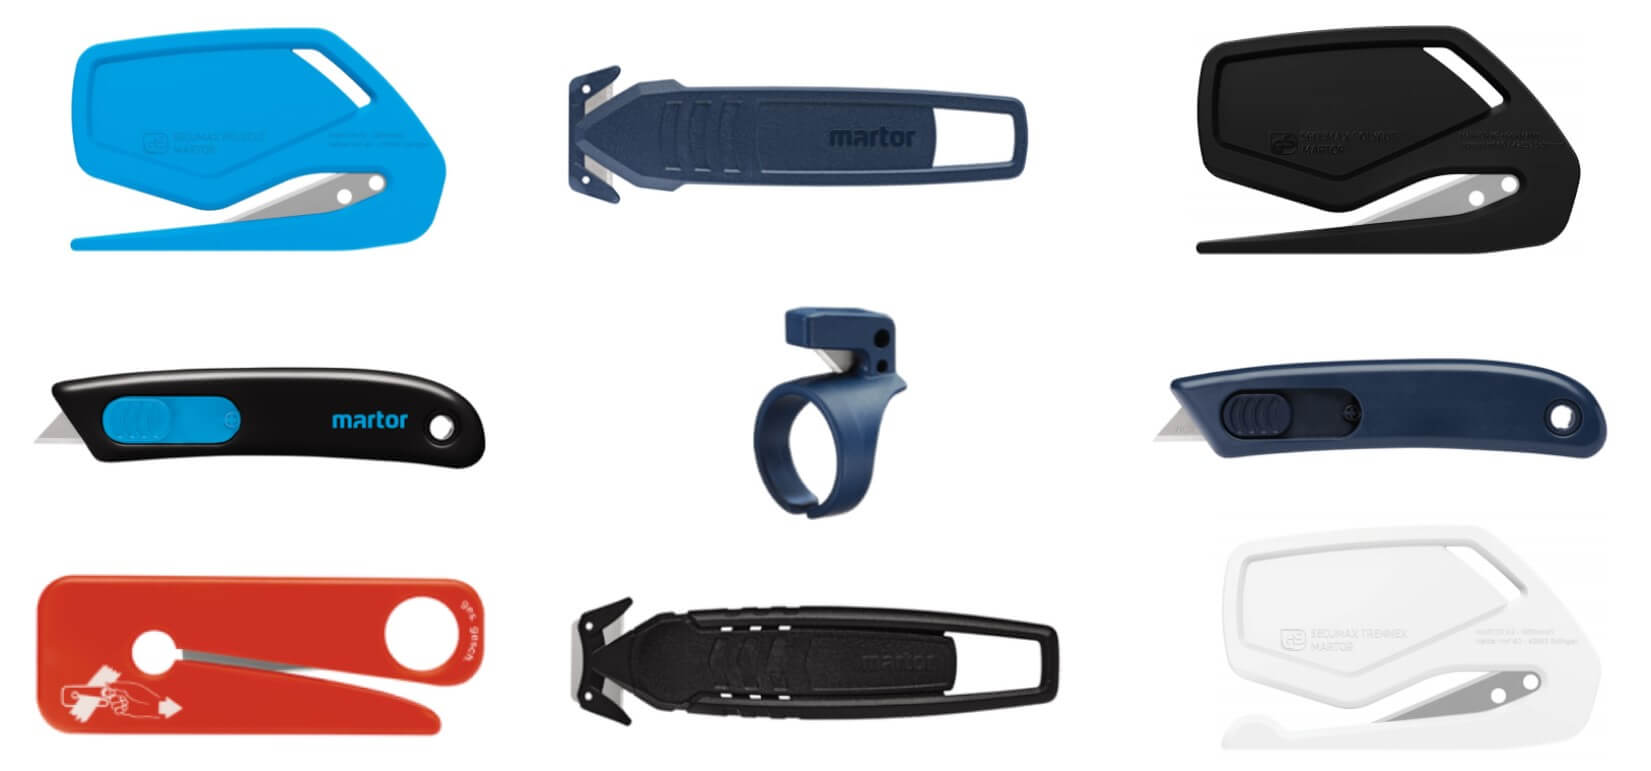 Range of Disposable Safety Cutters in India